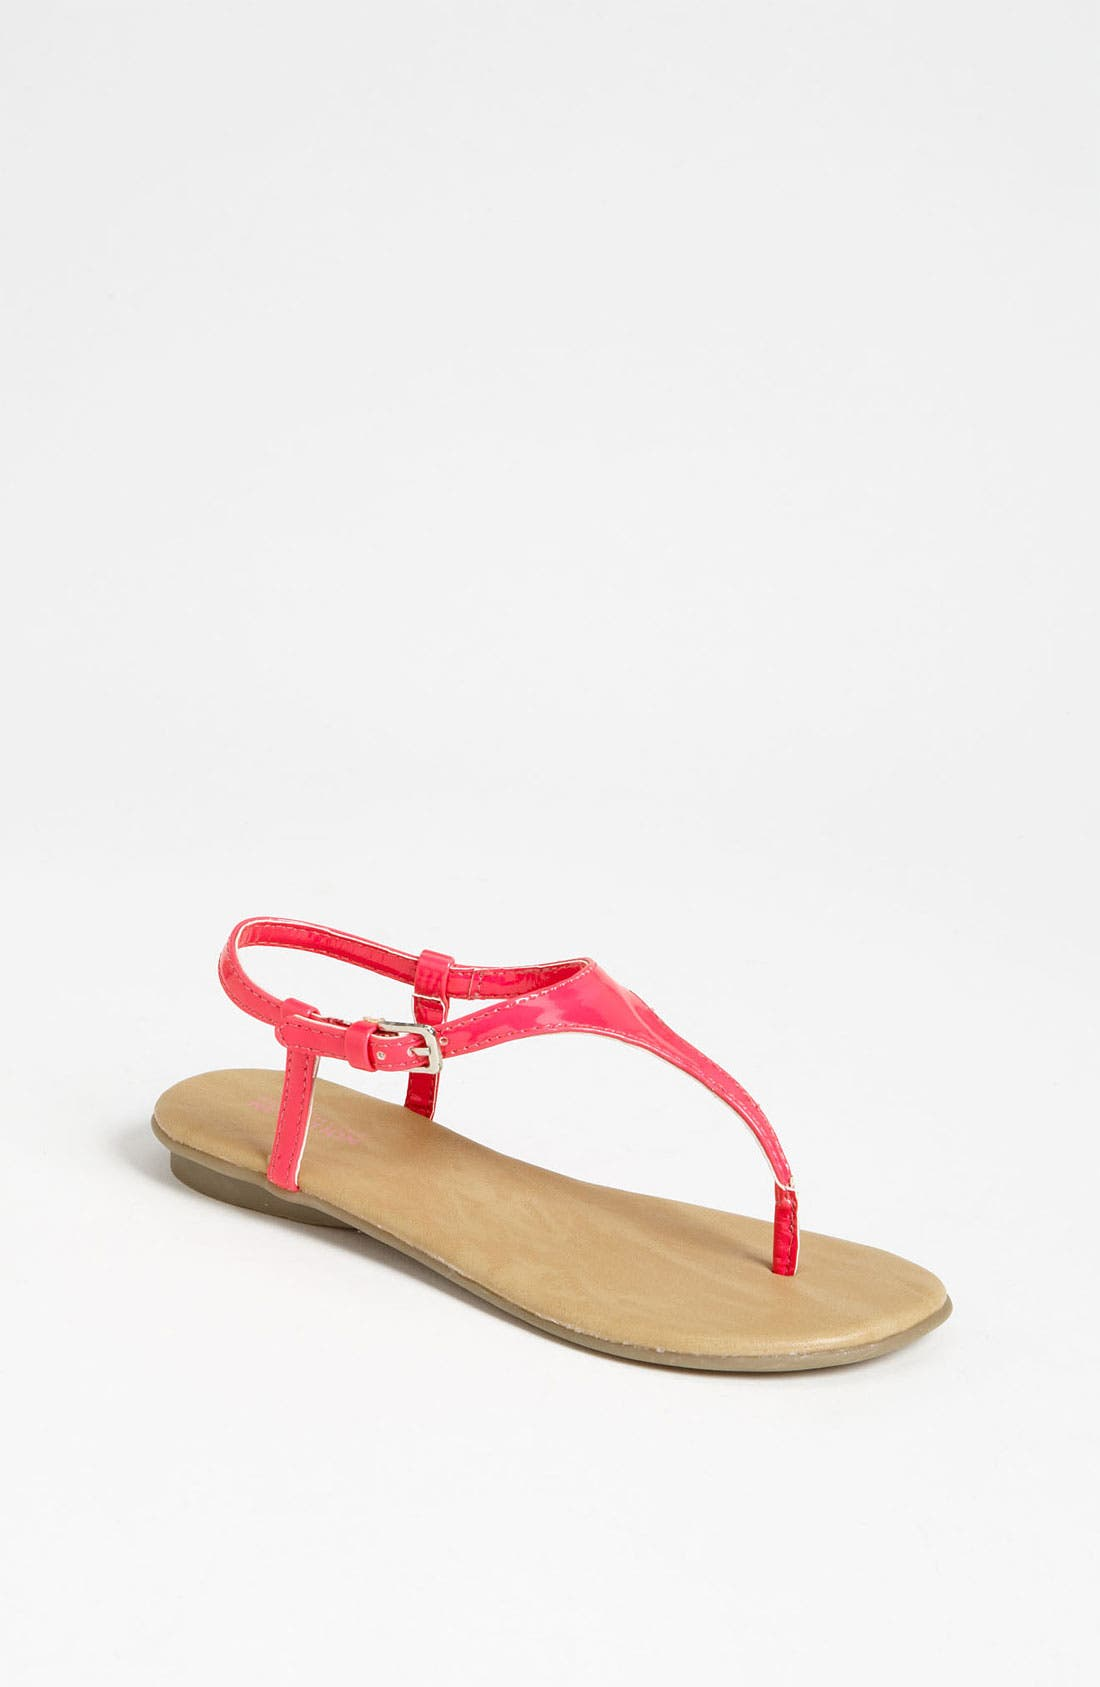 Main Image - Kenneth Cole Reaction 'Sunny Hunny' Sandal (Toddler, Little Kid & Big Kid)